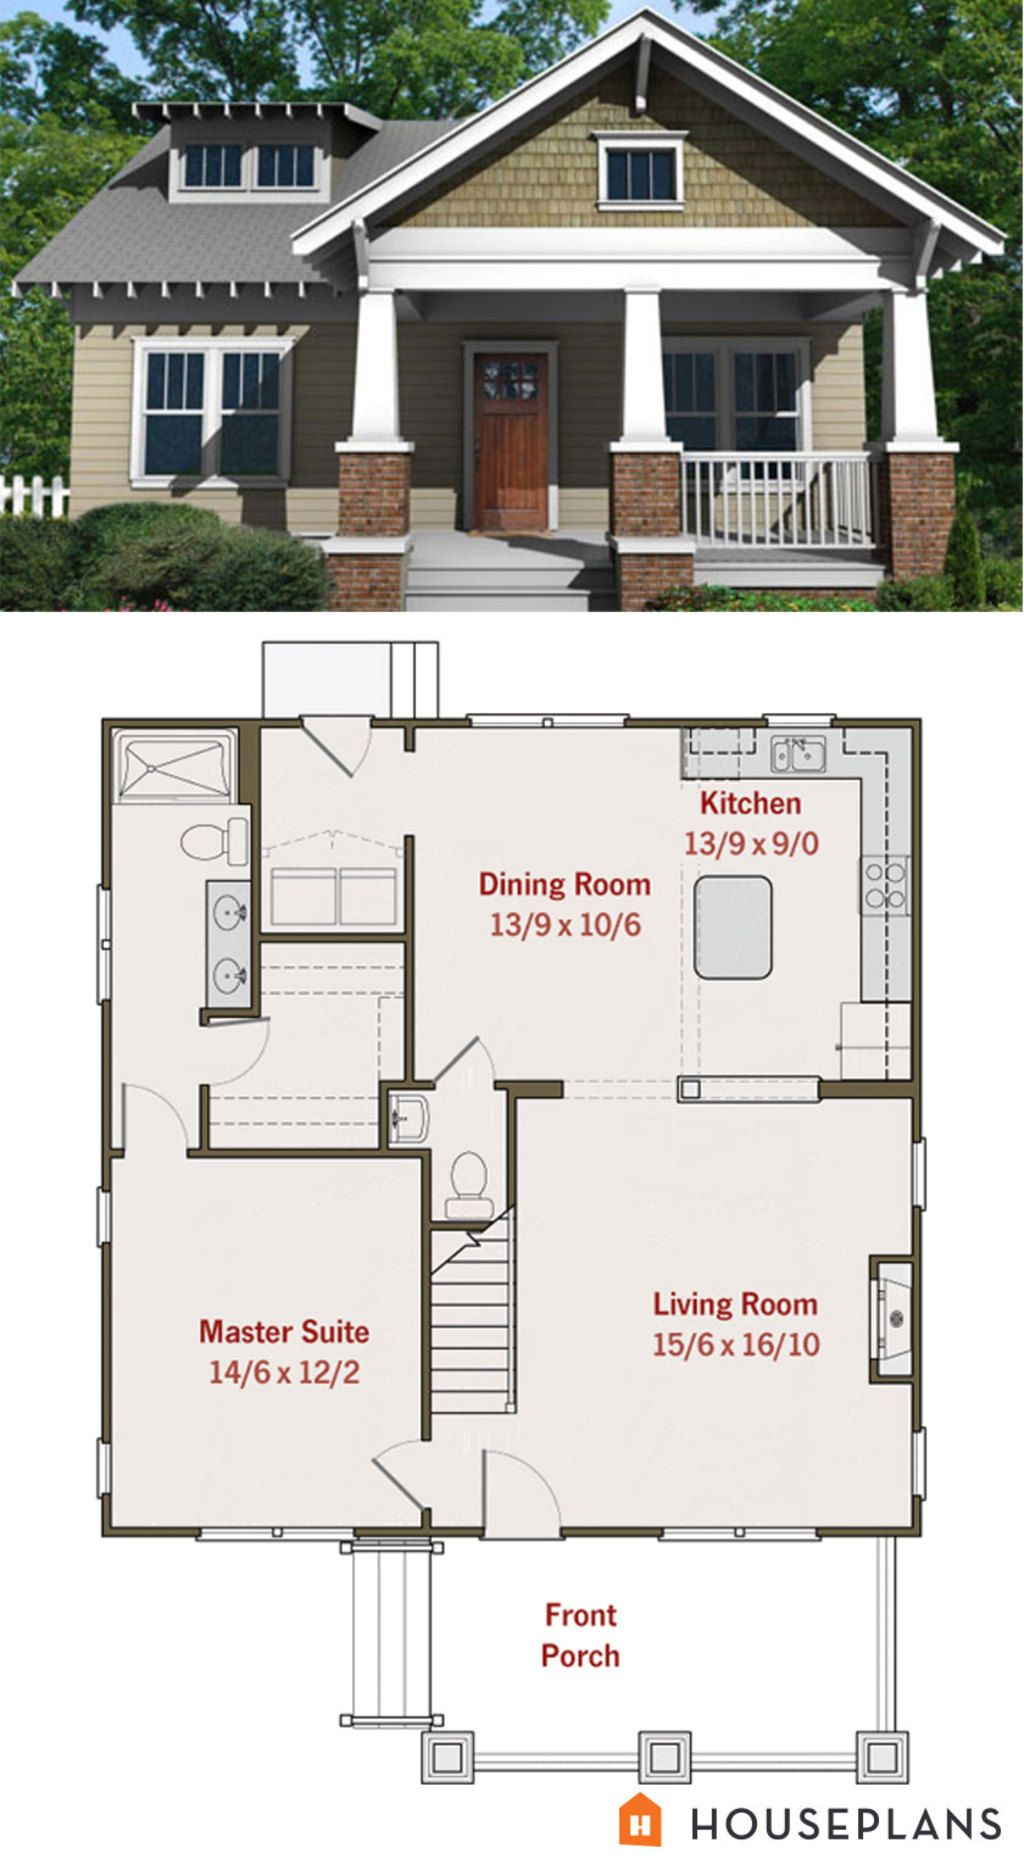 Small craftsman bungalow floor plan and elevation craftsman bungalows craftsman bungalow house plans small